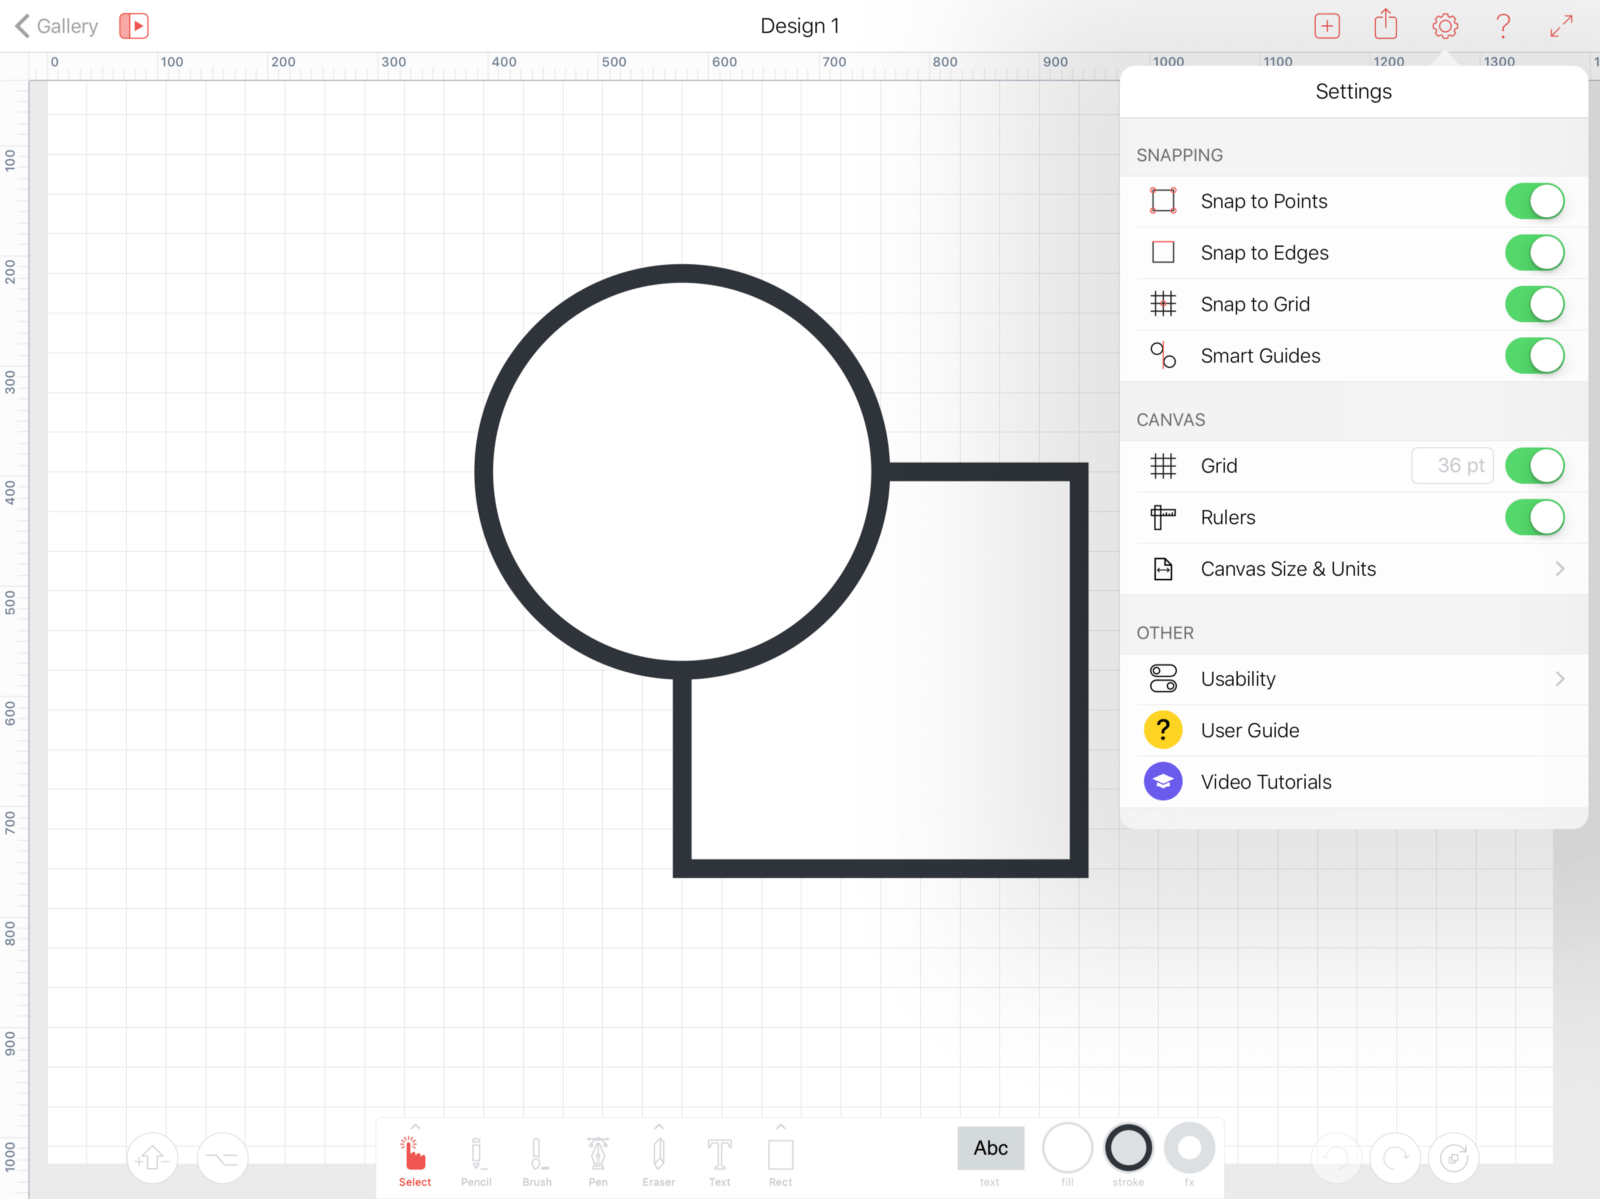 Does the perfect vector editor for iPad exist?